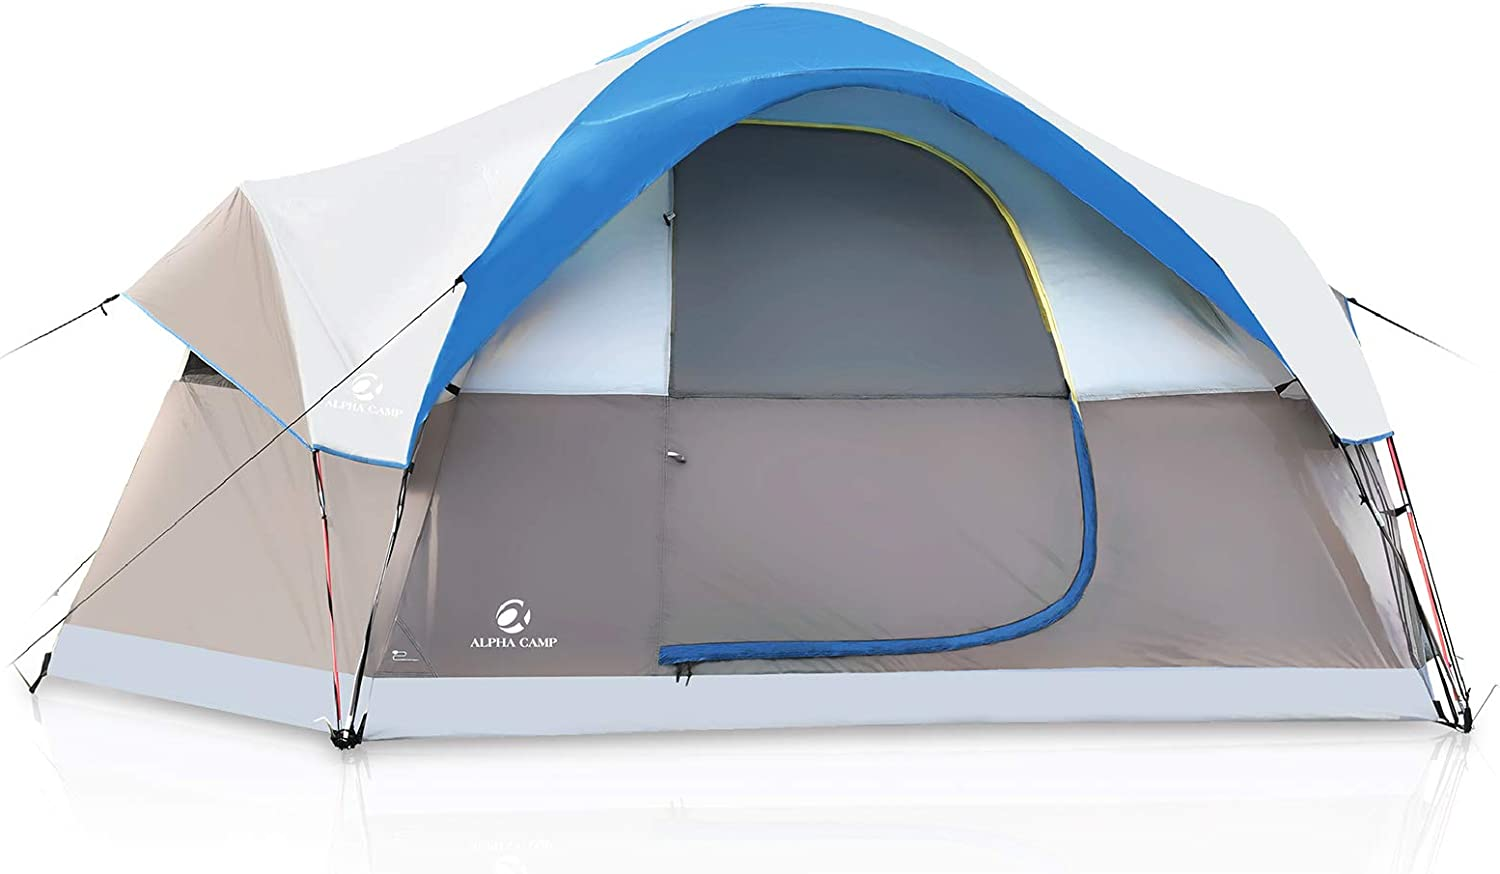 ALPHA Camp Family Tent- Camping Cabin Tents With Porched Screen Rooms